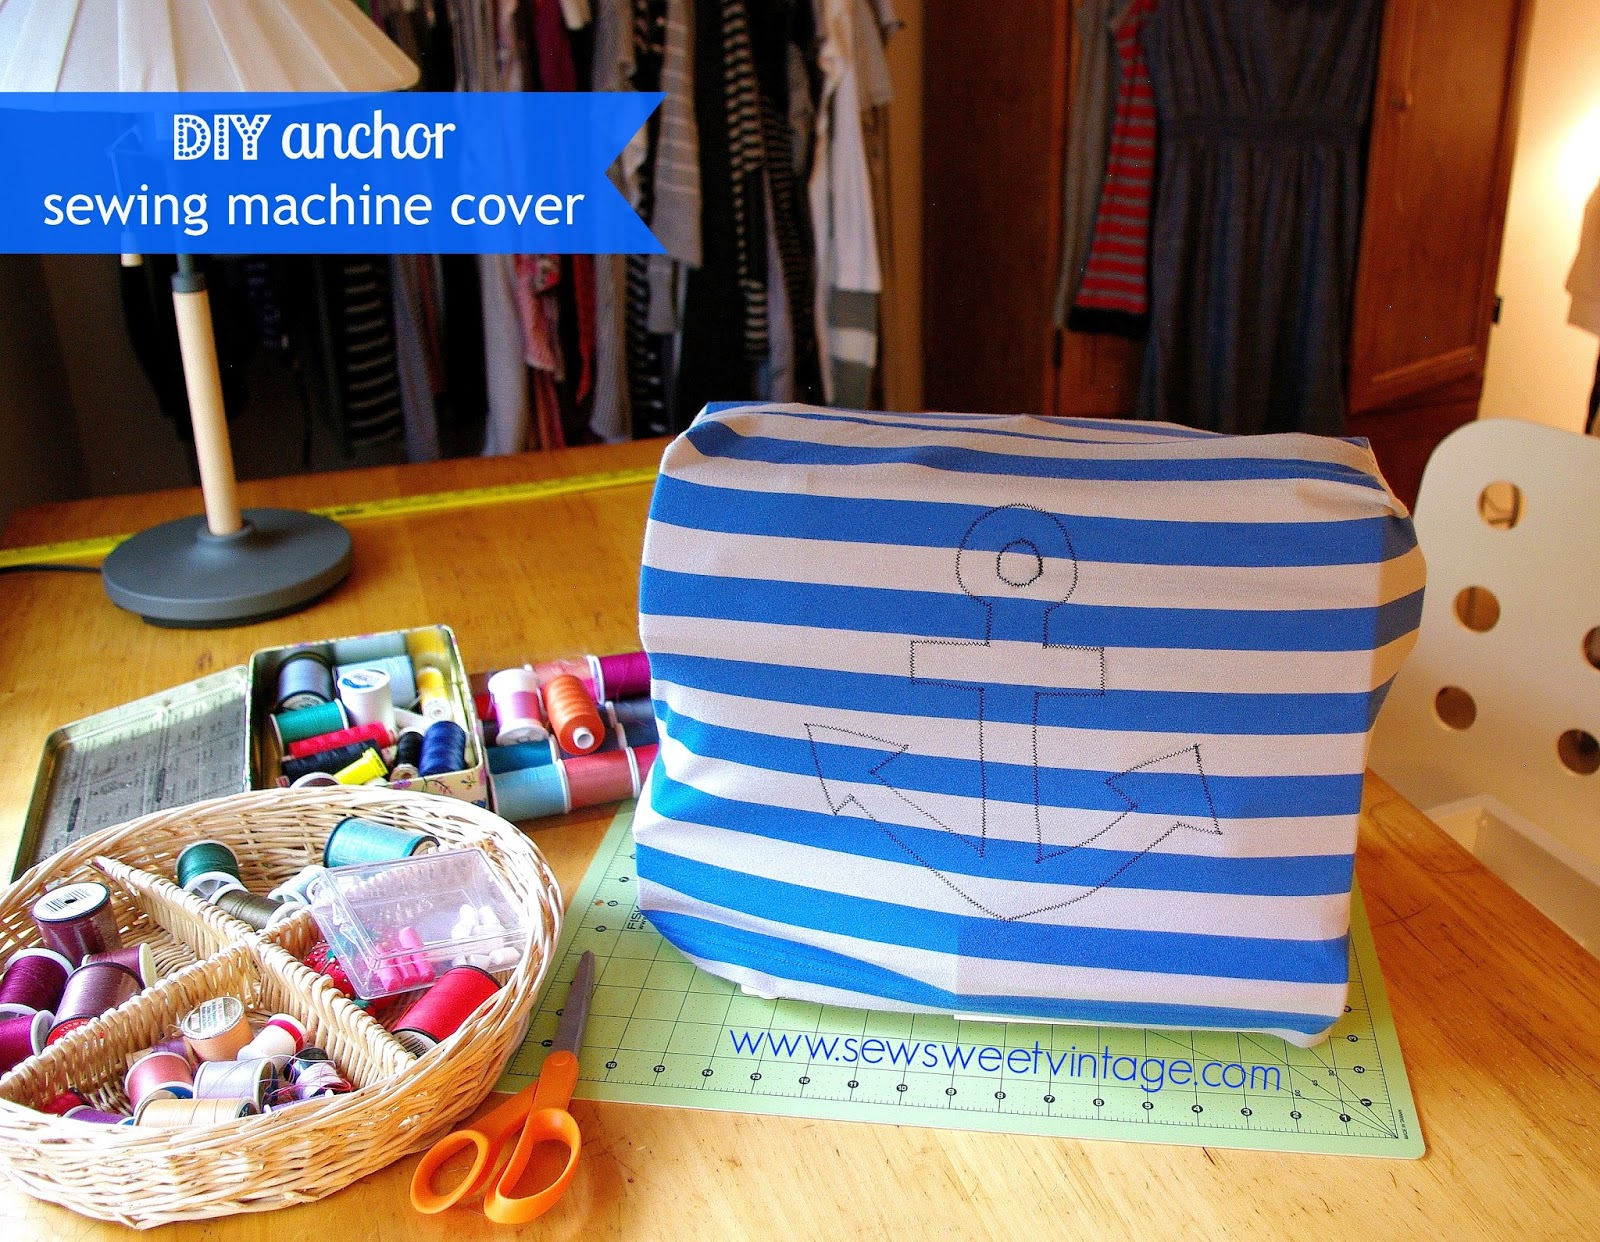 diy anchor sewing machine cover